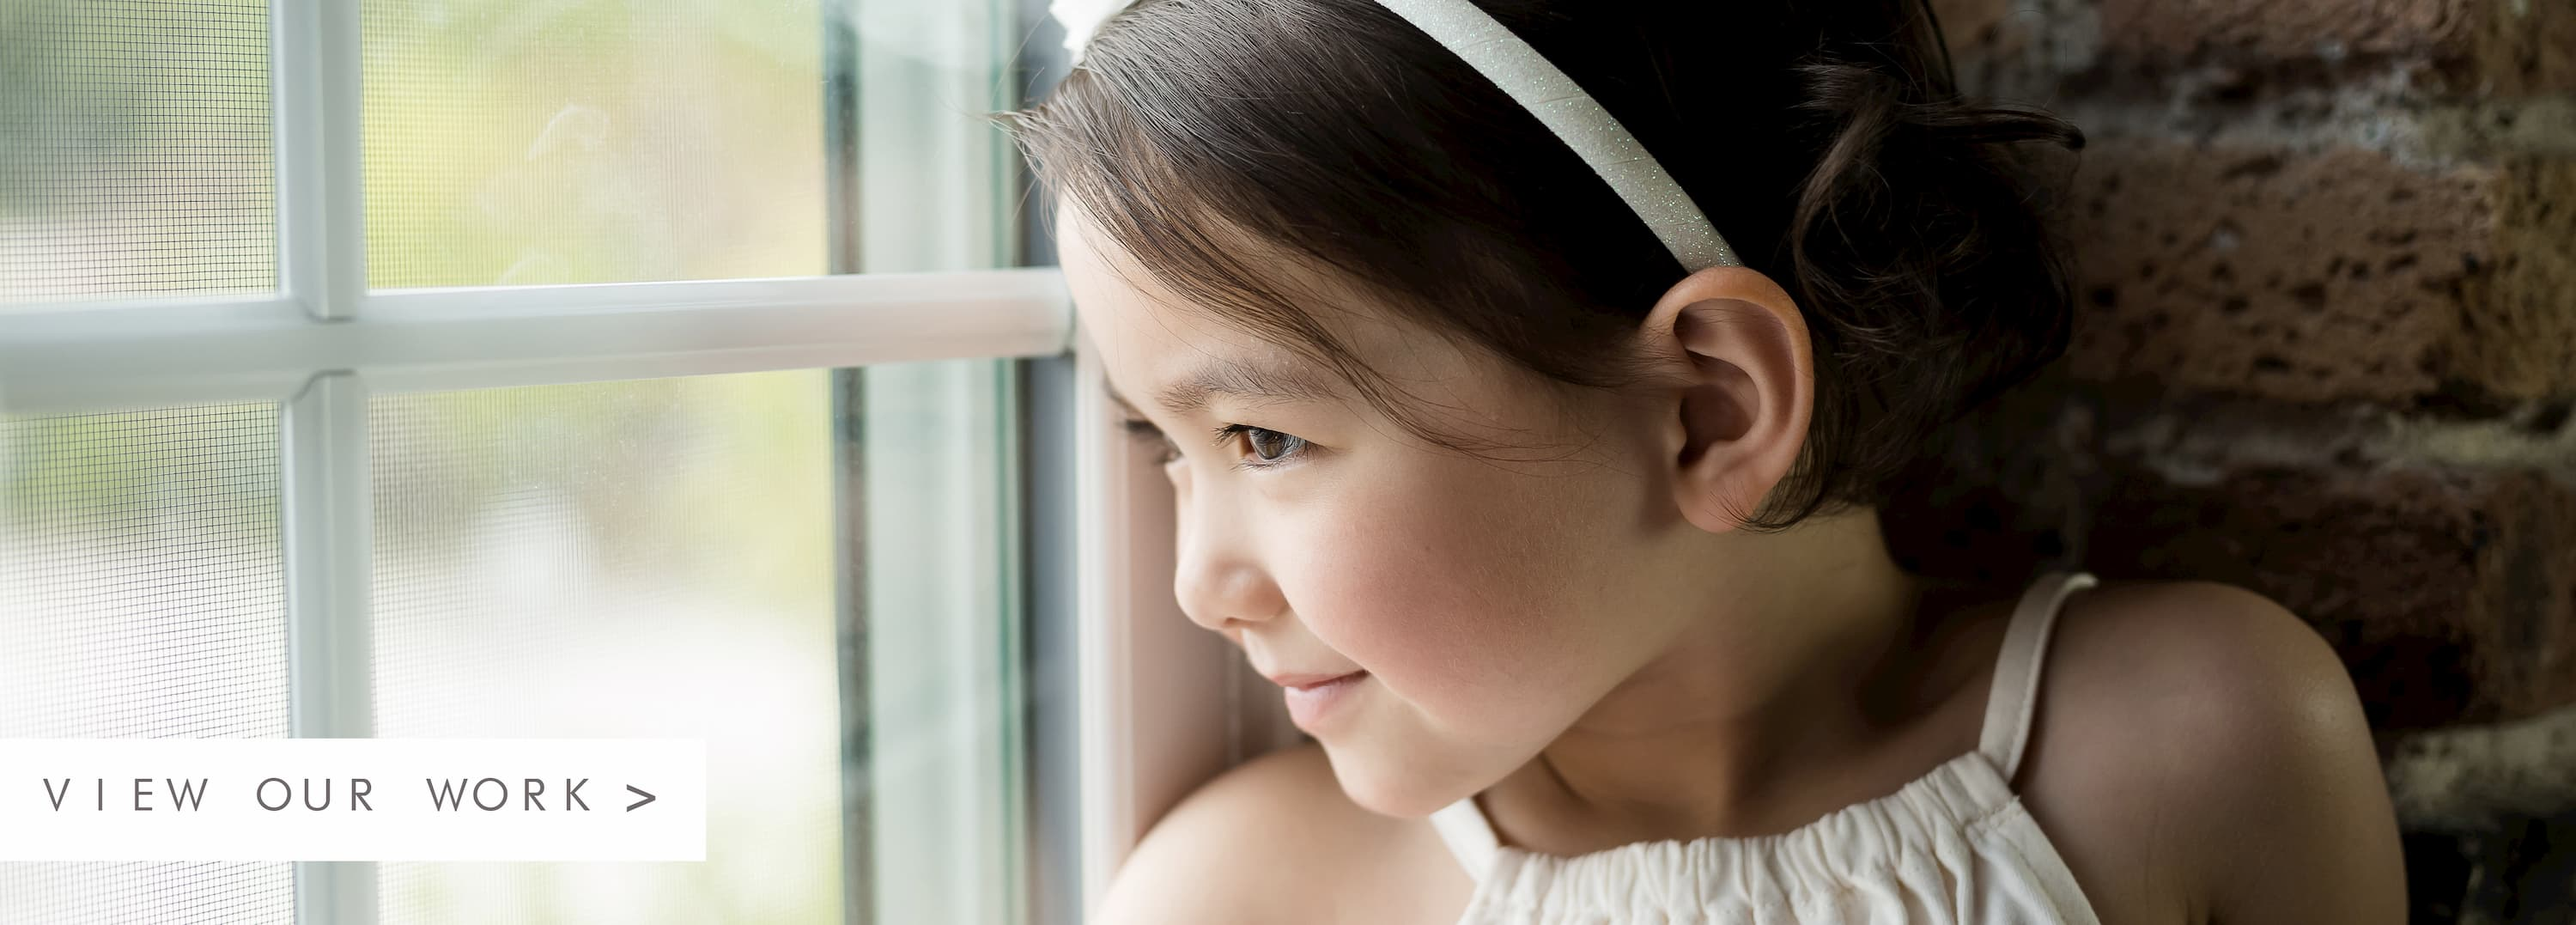 A child with rosy cheeks and a white headband in front of a brick wall looking out a window. To the left there is text to view our work